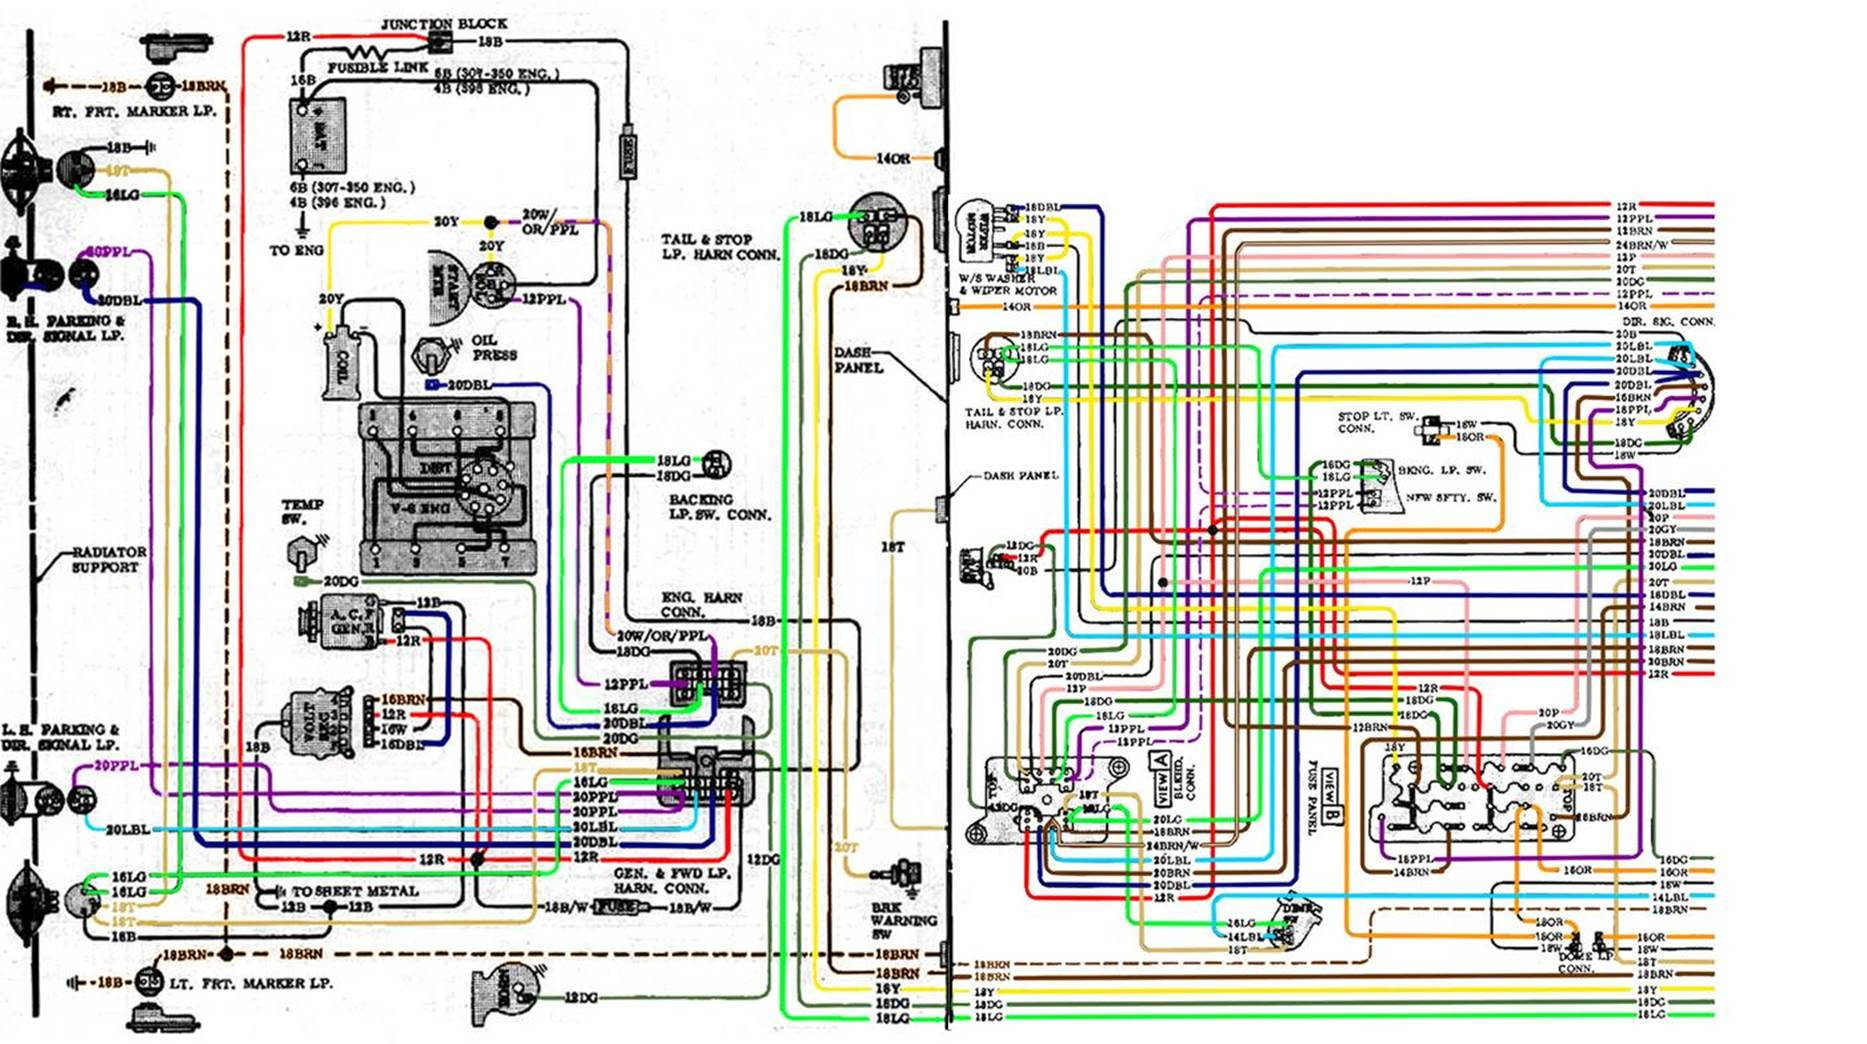 67 72 Chevy Wiring Diagram 1974 Chevy C10 Wiring-Diagram 1967 Chevy Wiring  Diagram